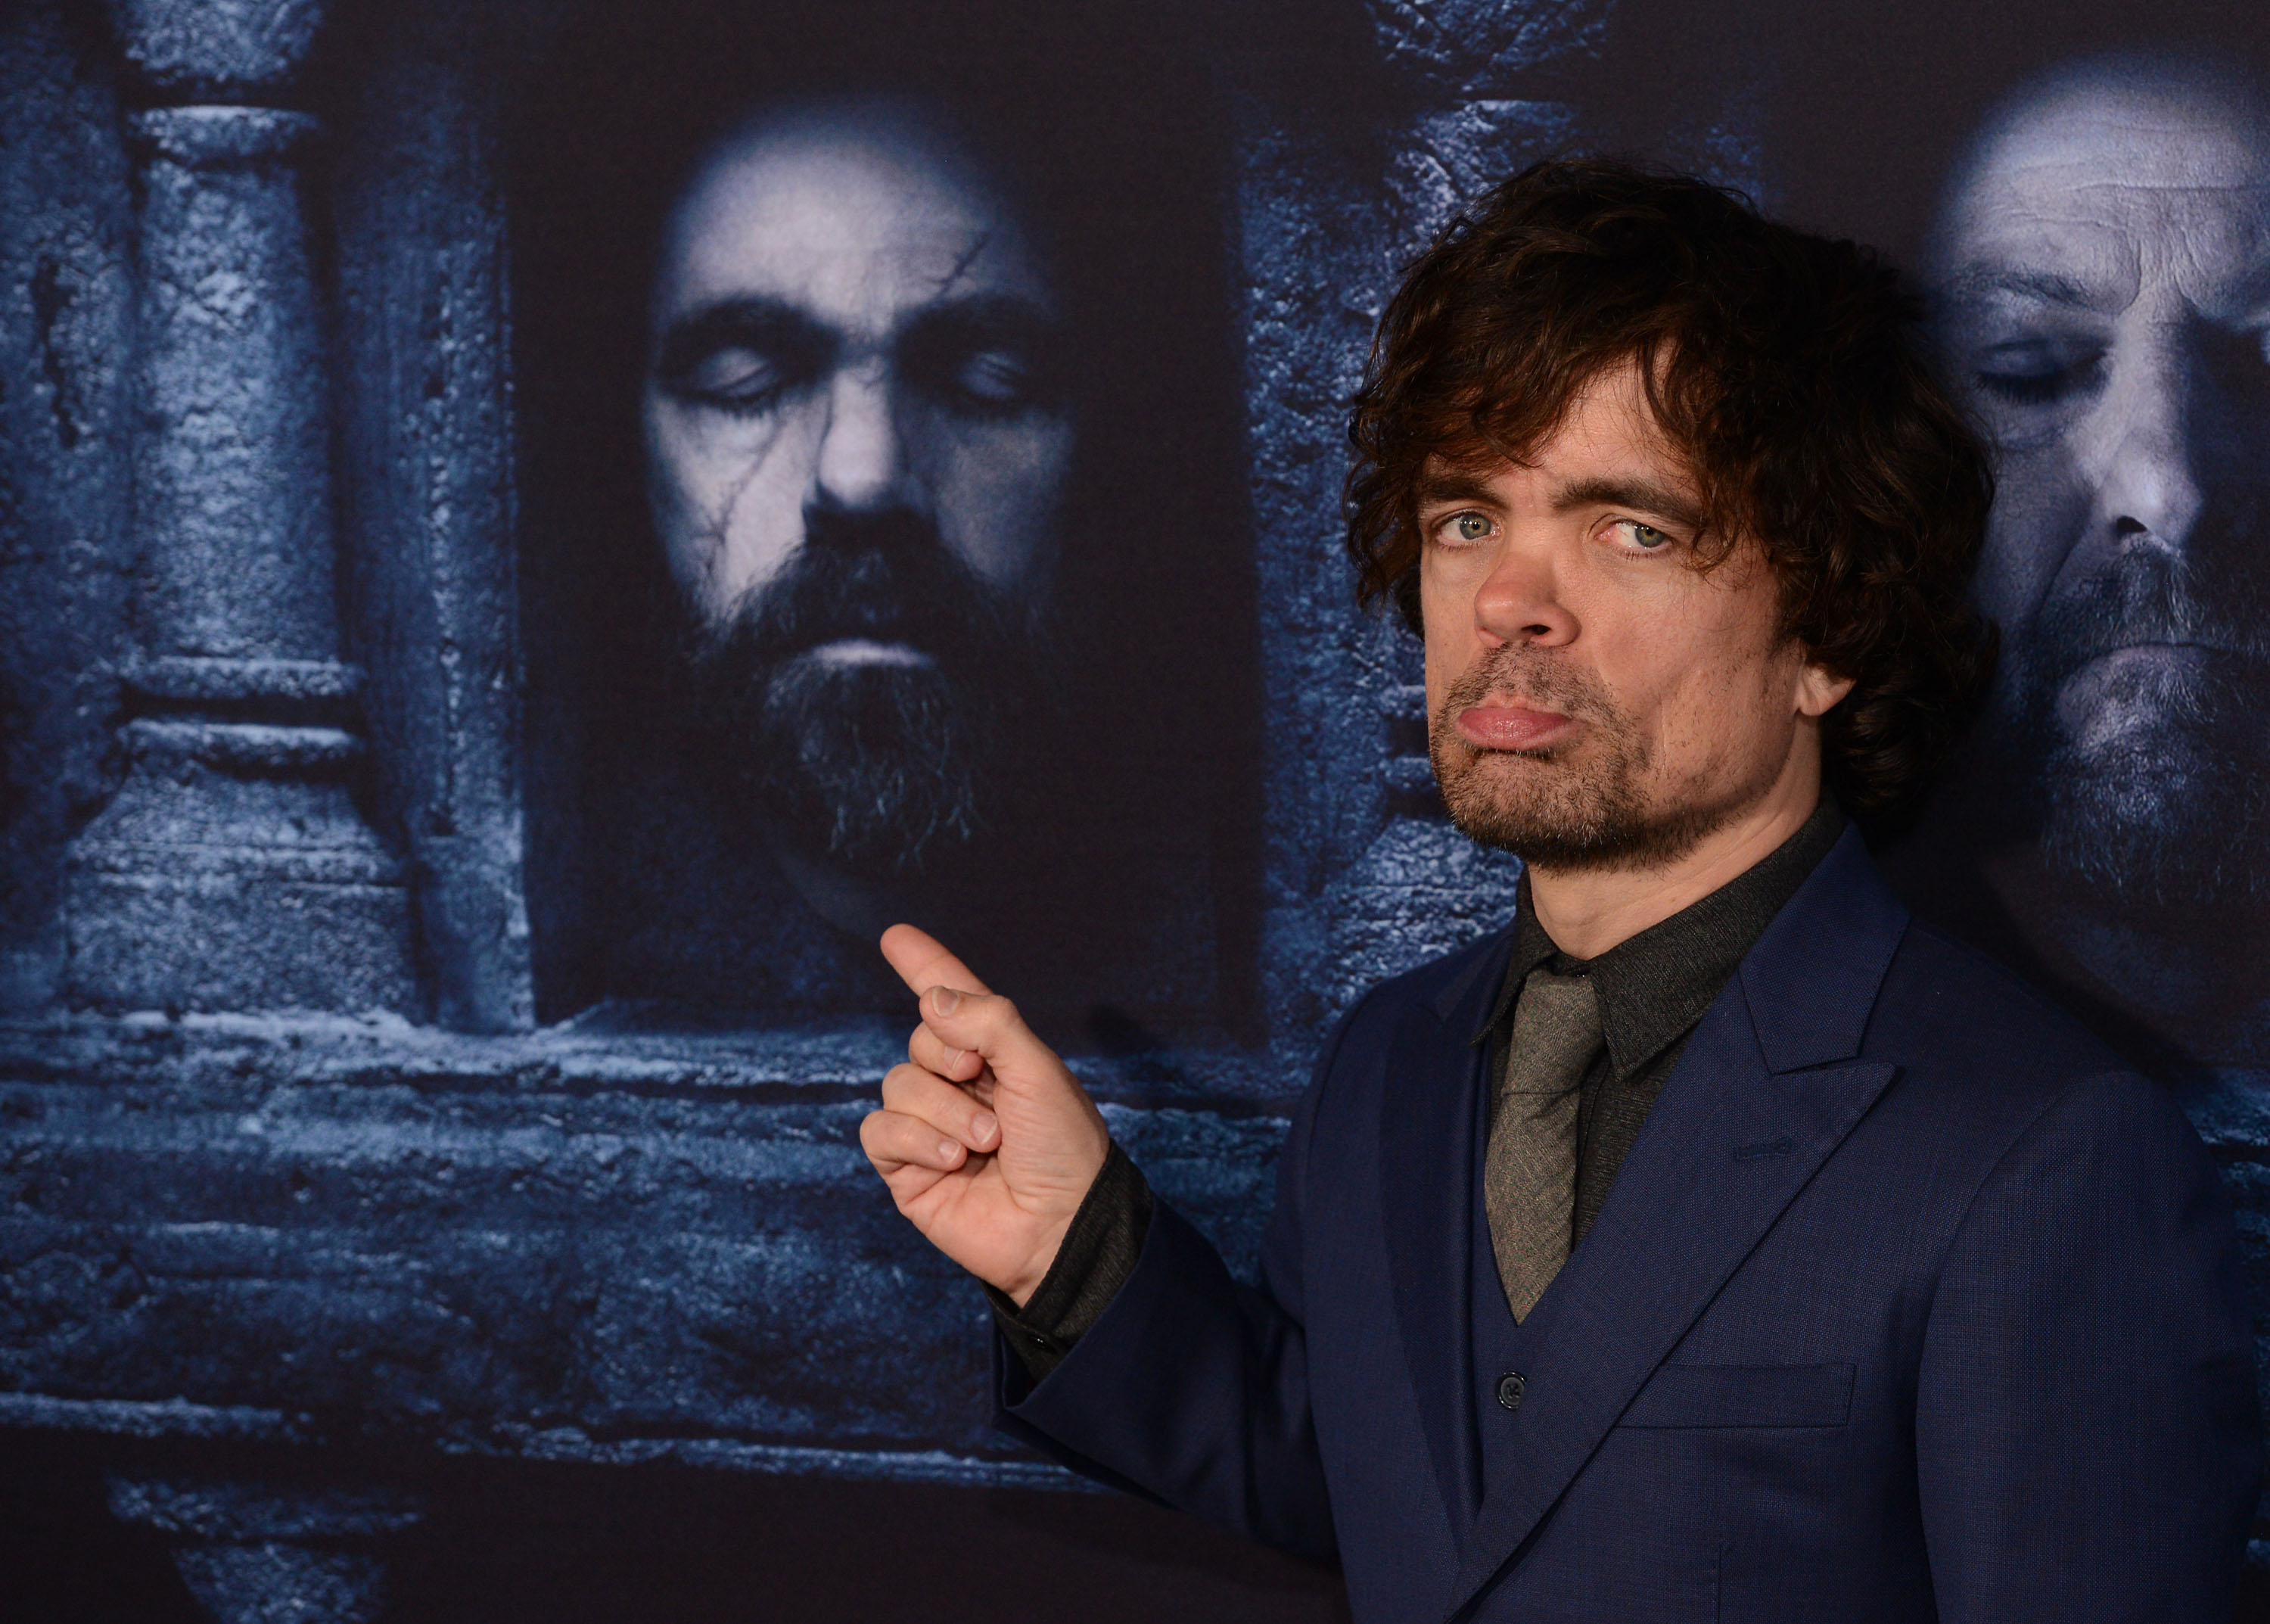 Actor Peter Dinklage arrives at the premiere of HBO's 'Game Of Thrones' Season 6 at TCL Chinese Theatre on April 10, 2016 in Hollywood, California.